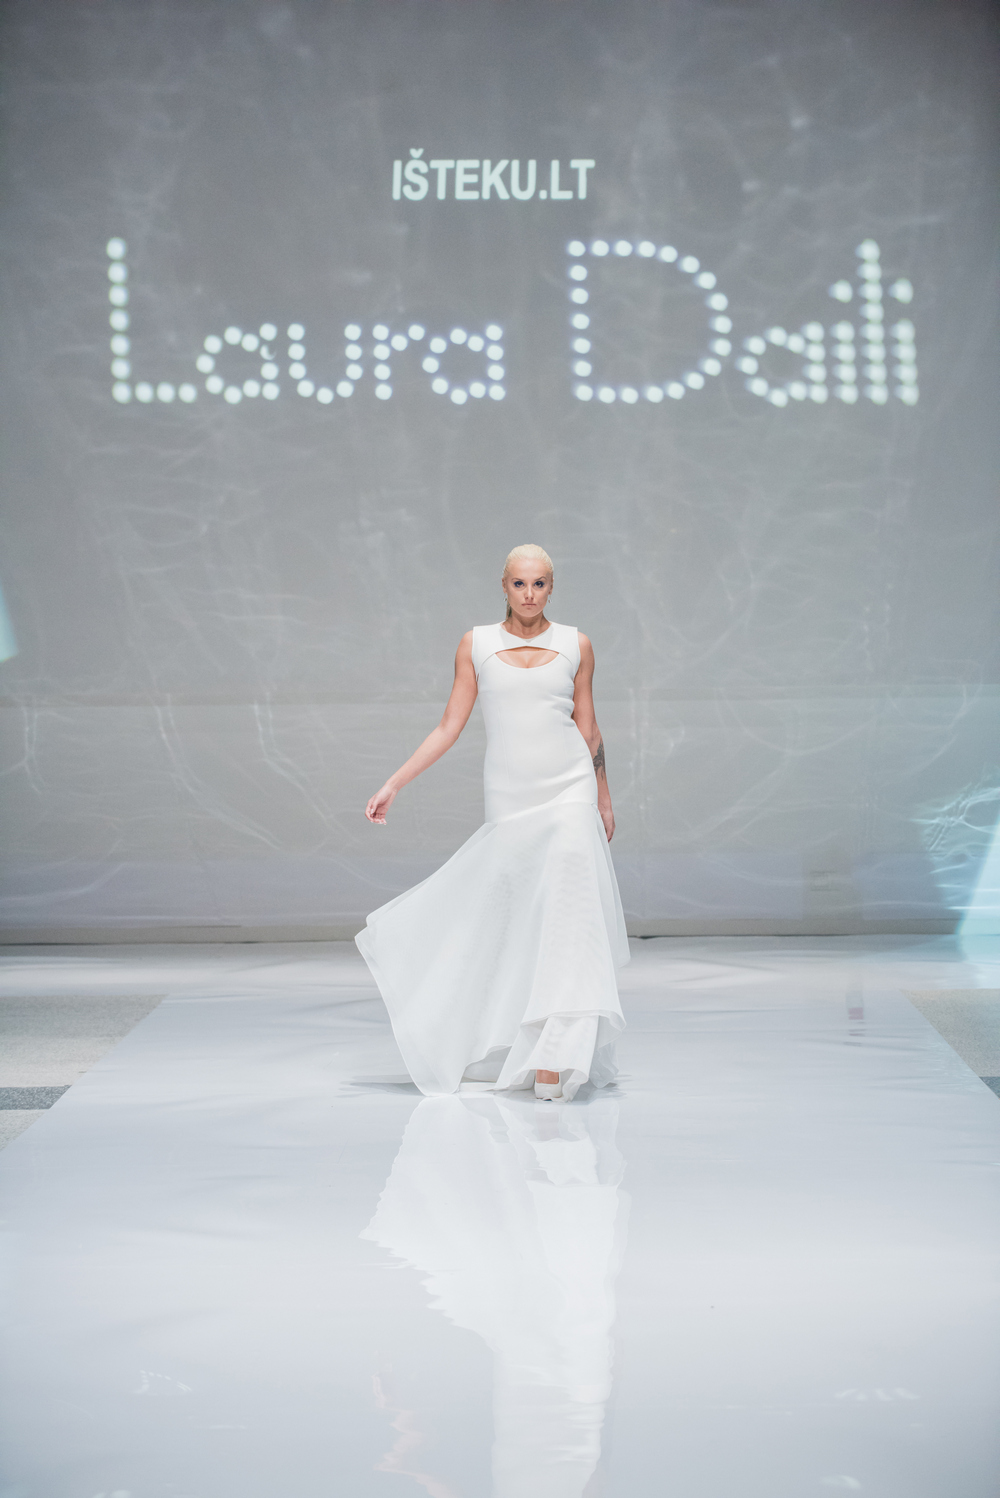 Laura Daili Bridal Collection 2017 Isteku lt (32)